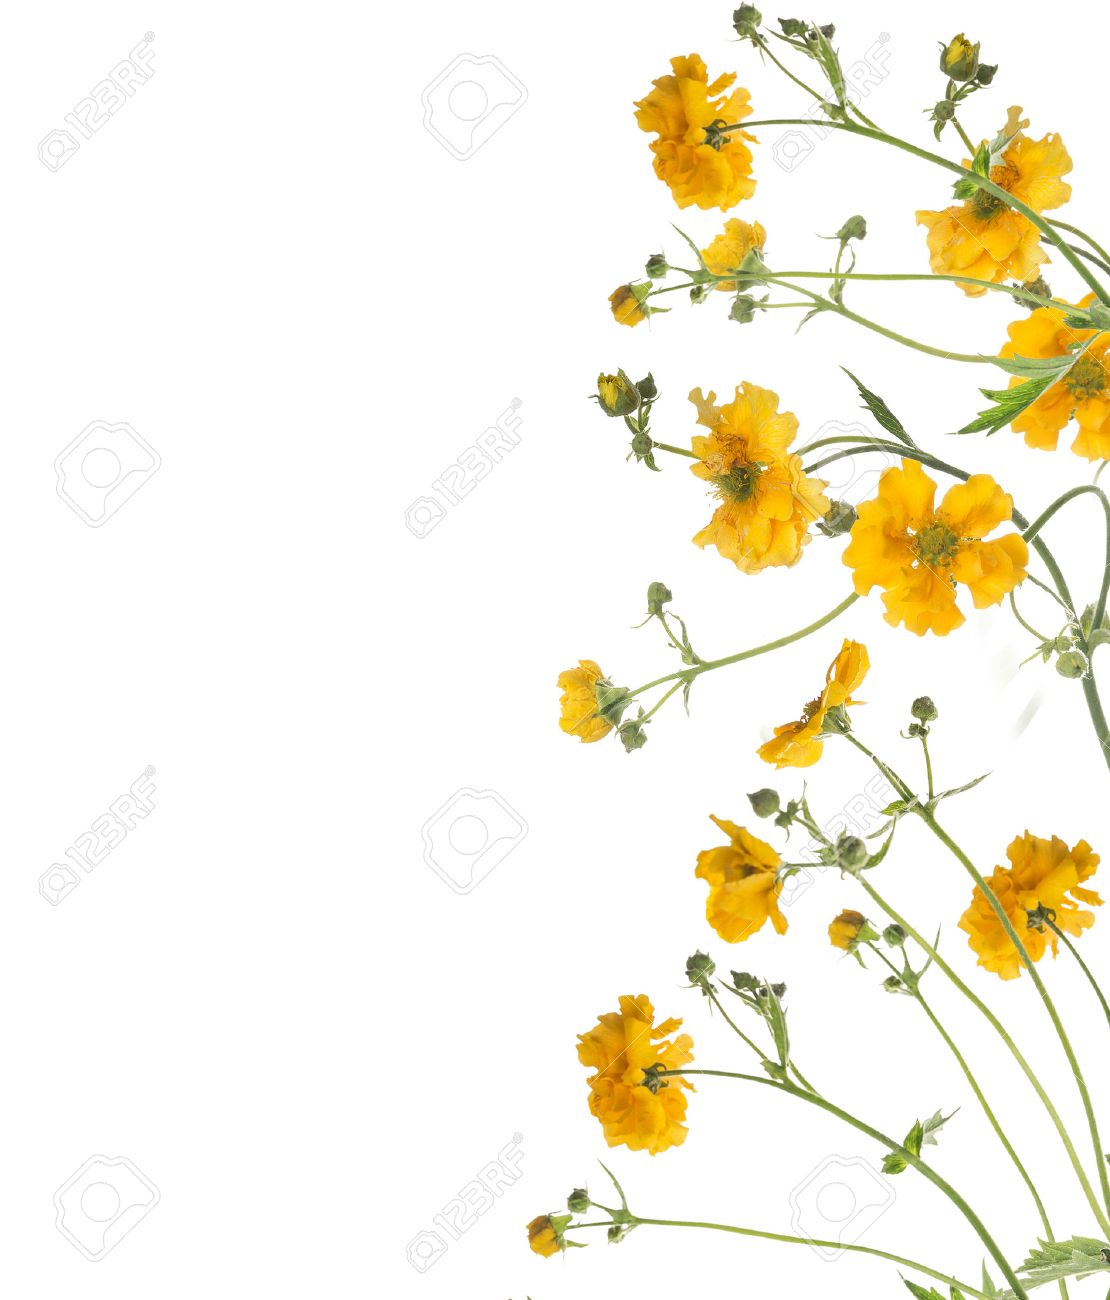 Floral border of yellow flowers isolated on white background stock floral border of yellow flowers isolated on white background stock photo 37518816 mightylinksfo